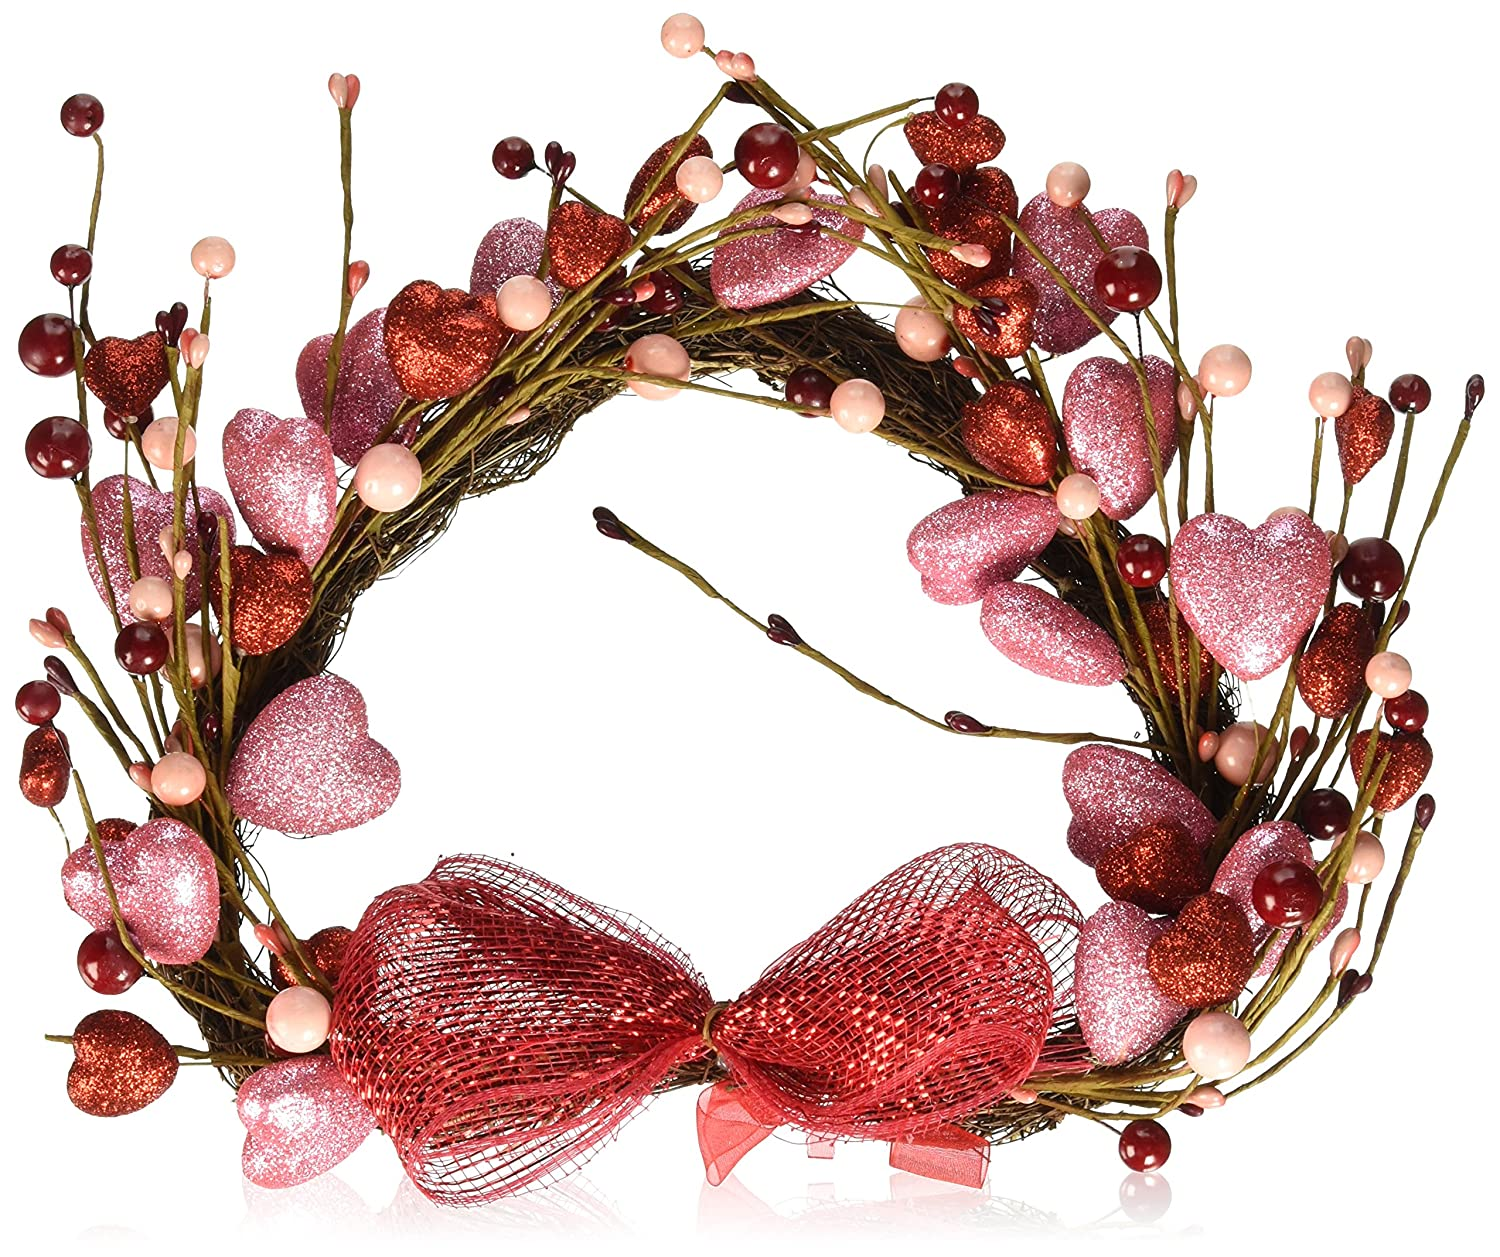 Amazon decorative glitter sparkling valentines day holiday amazon decorative glitter sparkling valentines day holiday heart wall hanging decor grapevine twigs hearts picks red pink berries bow ribbon home amipublicfo Gallery